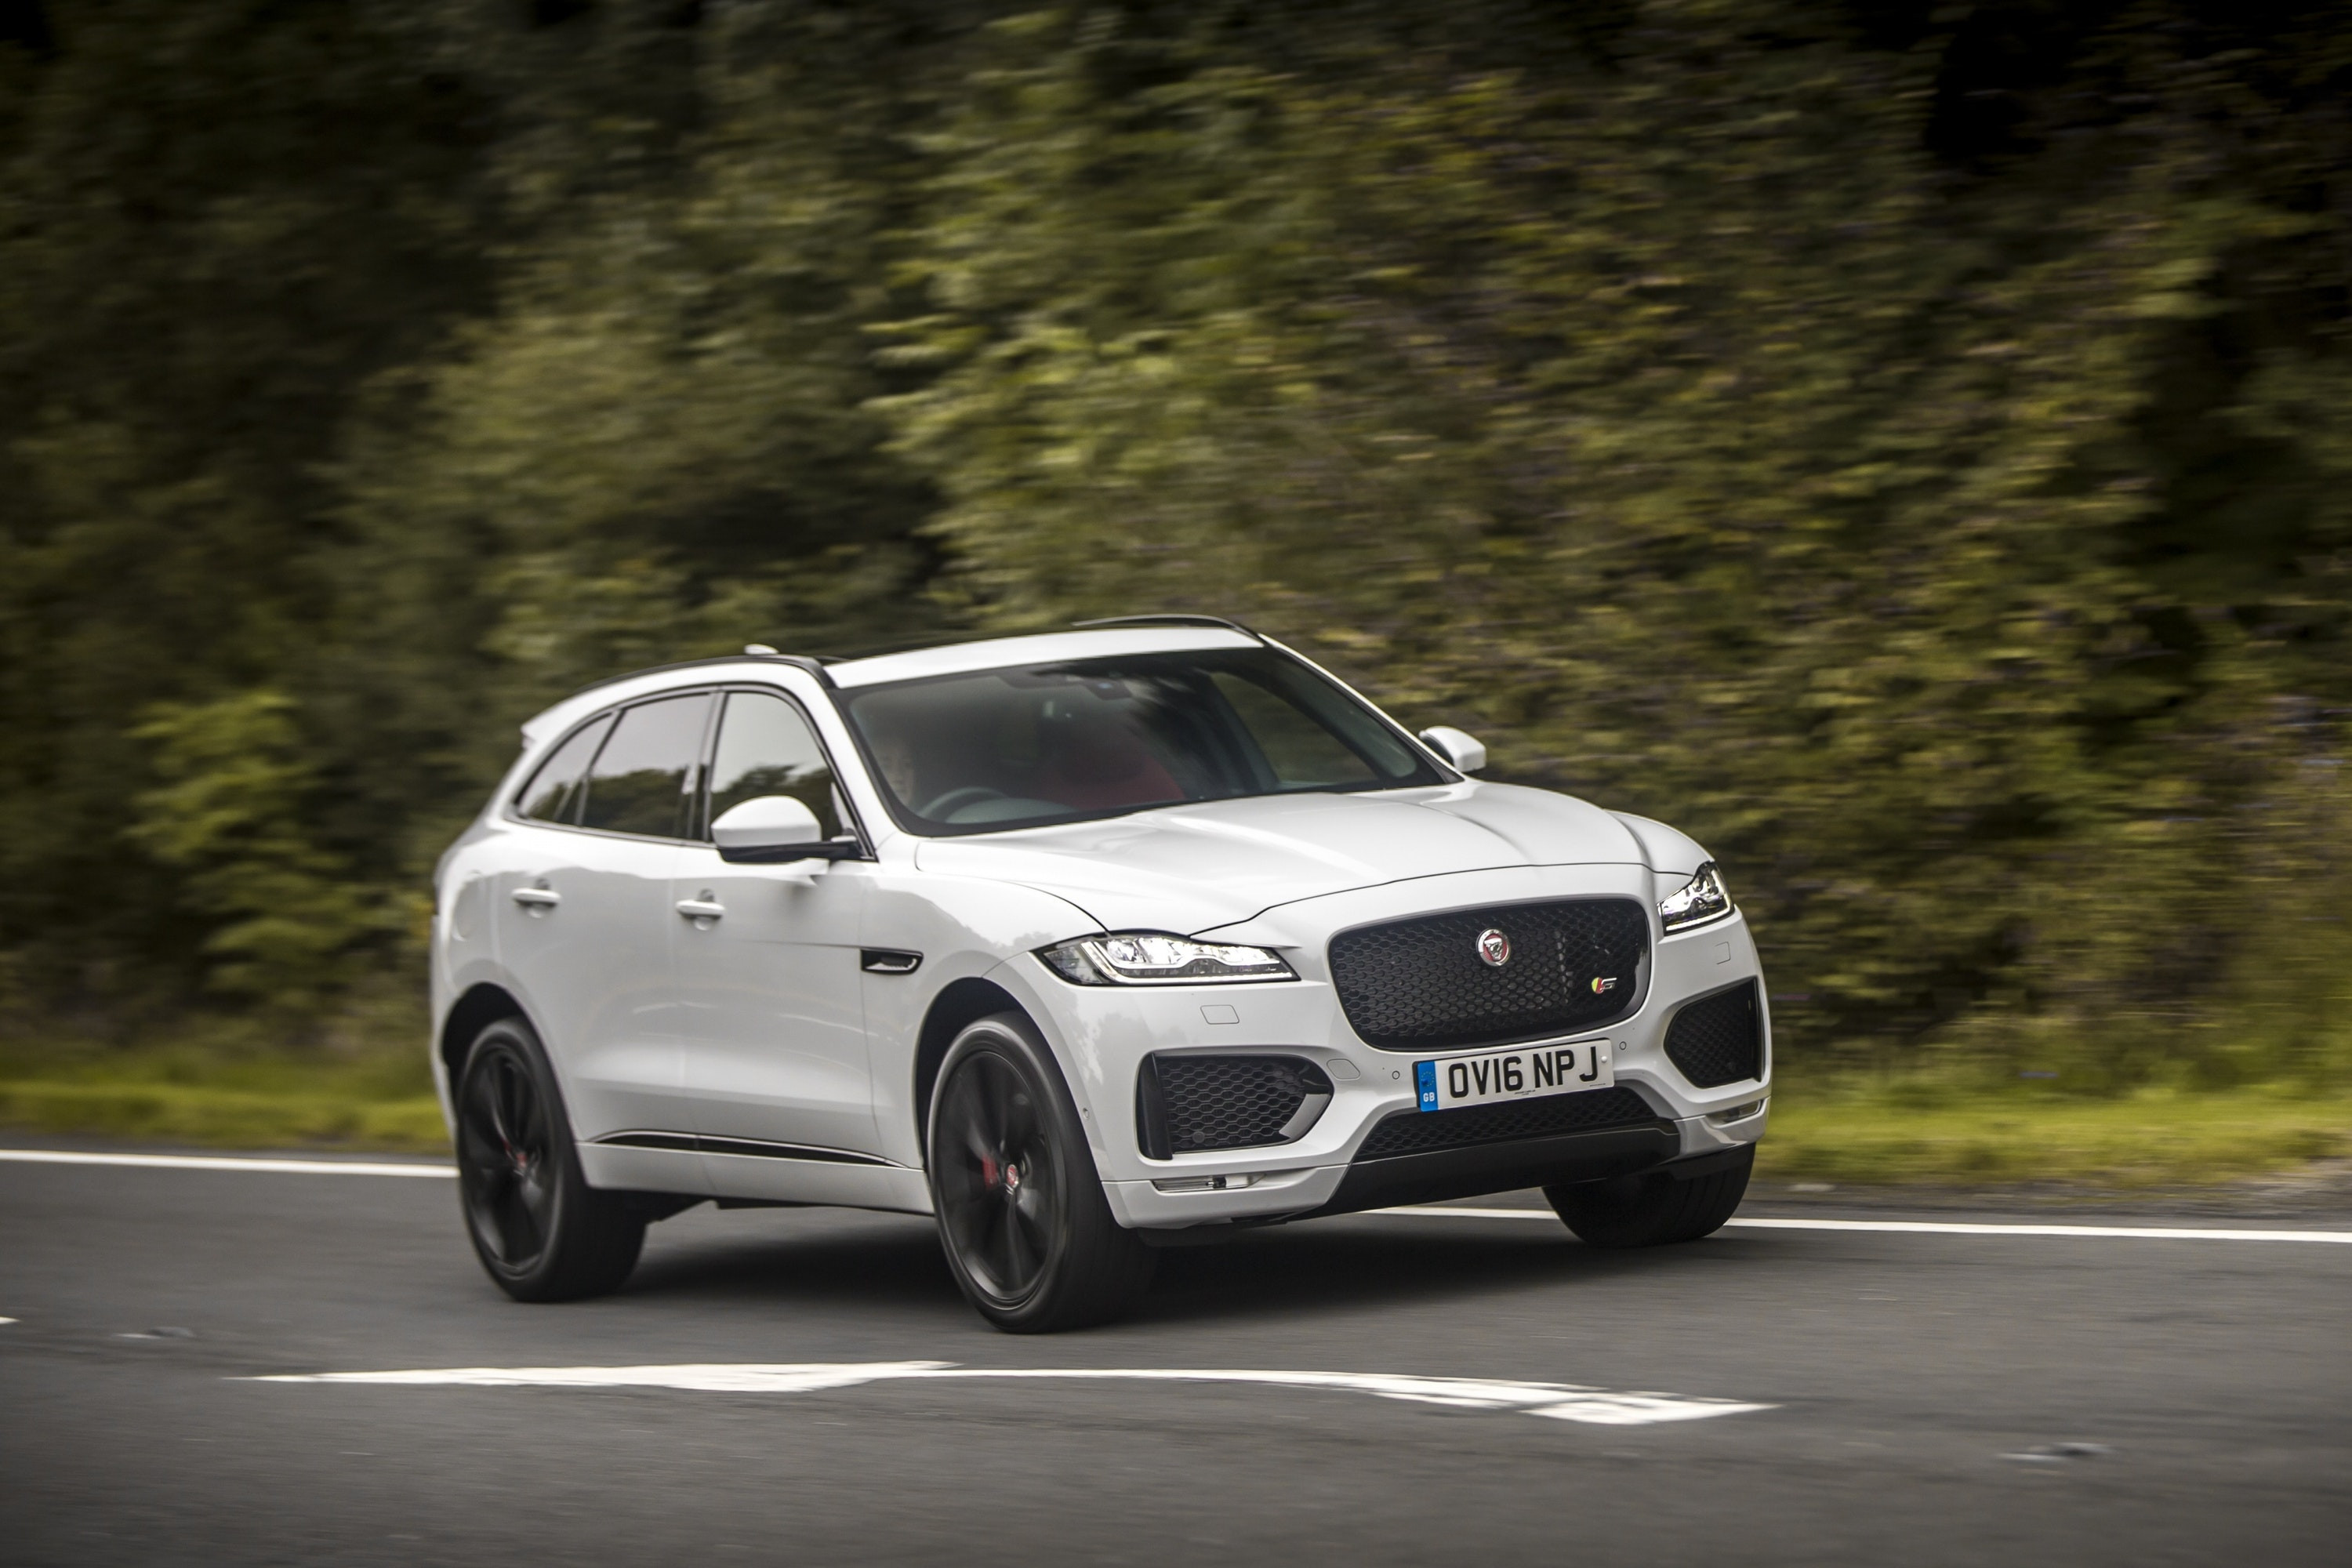 White Jaguar F-Pace at speed on a lane